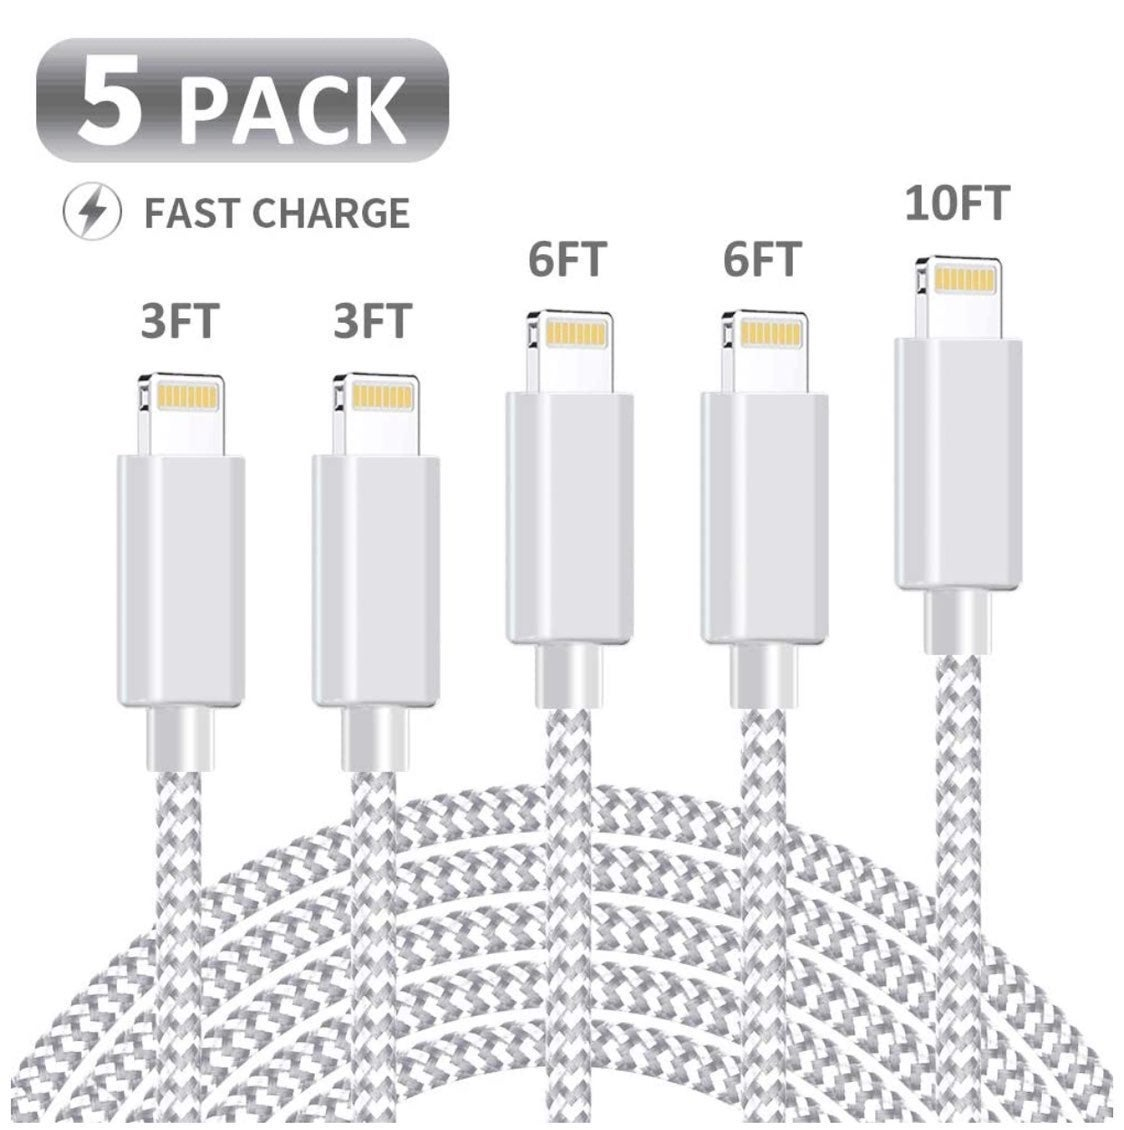 Five Iphone chargers